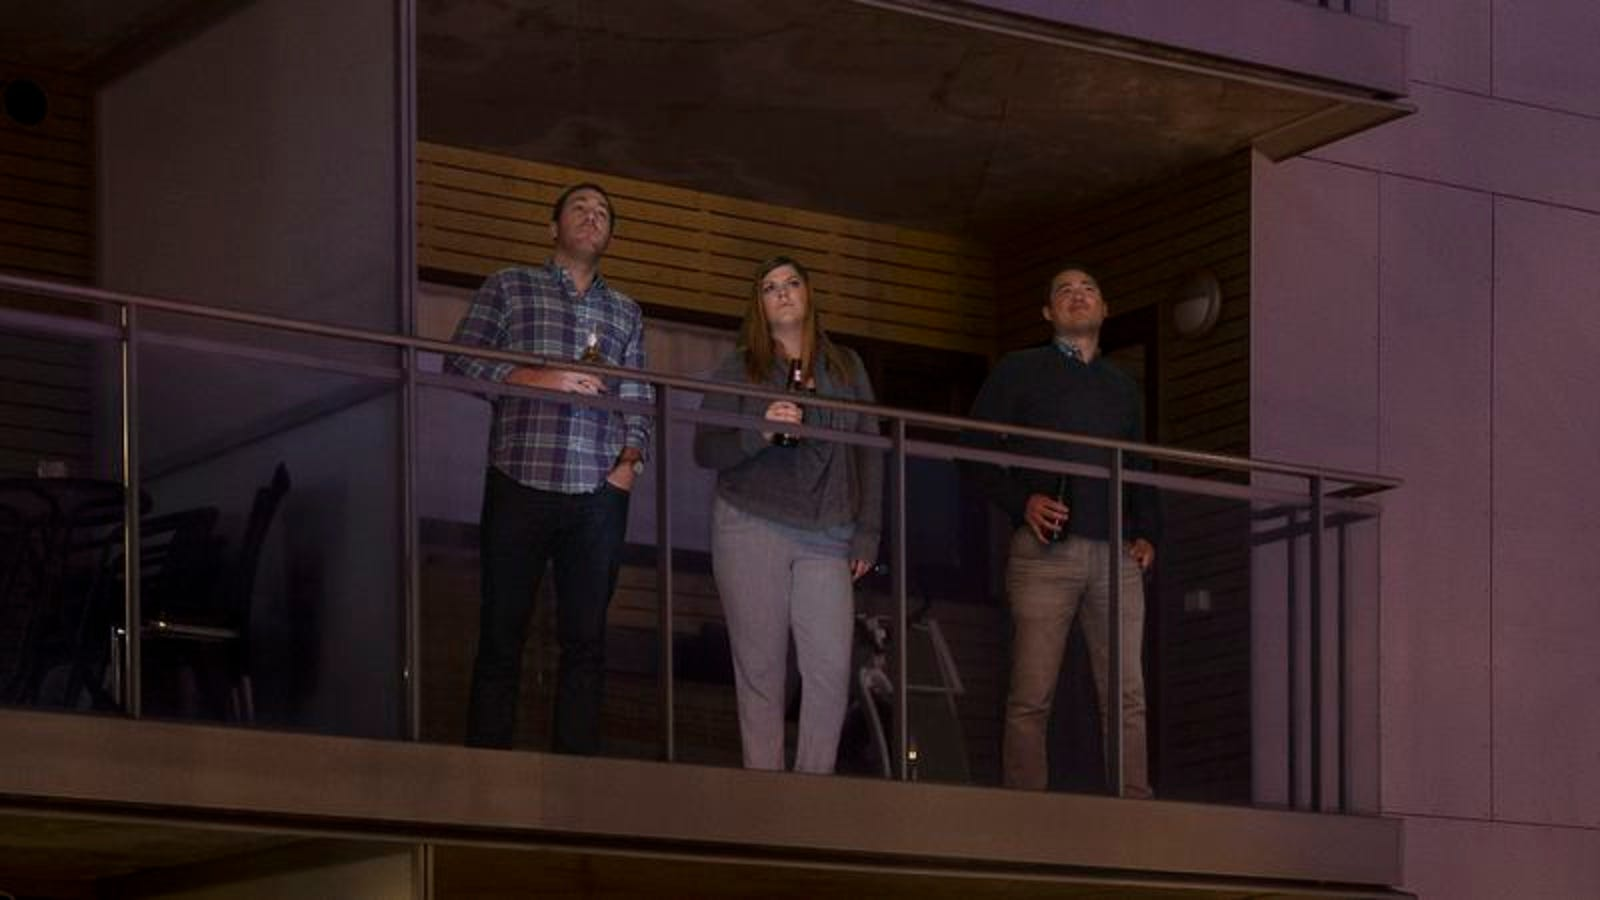 New Study Finds Staring Out From Balcony With Best Friends Strongest Indicator That This Your City, Your Time